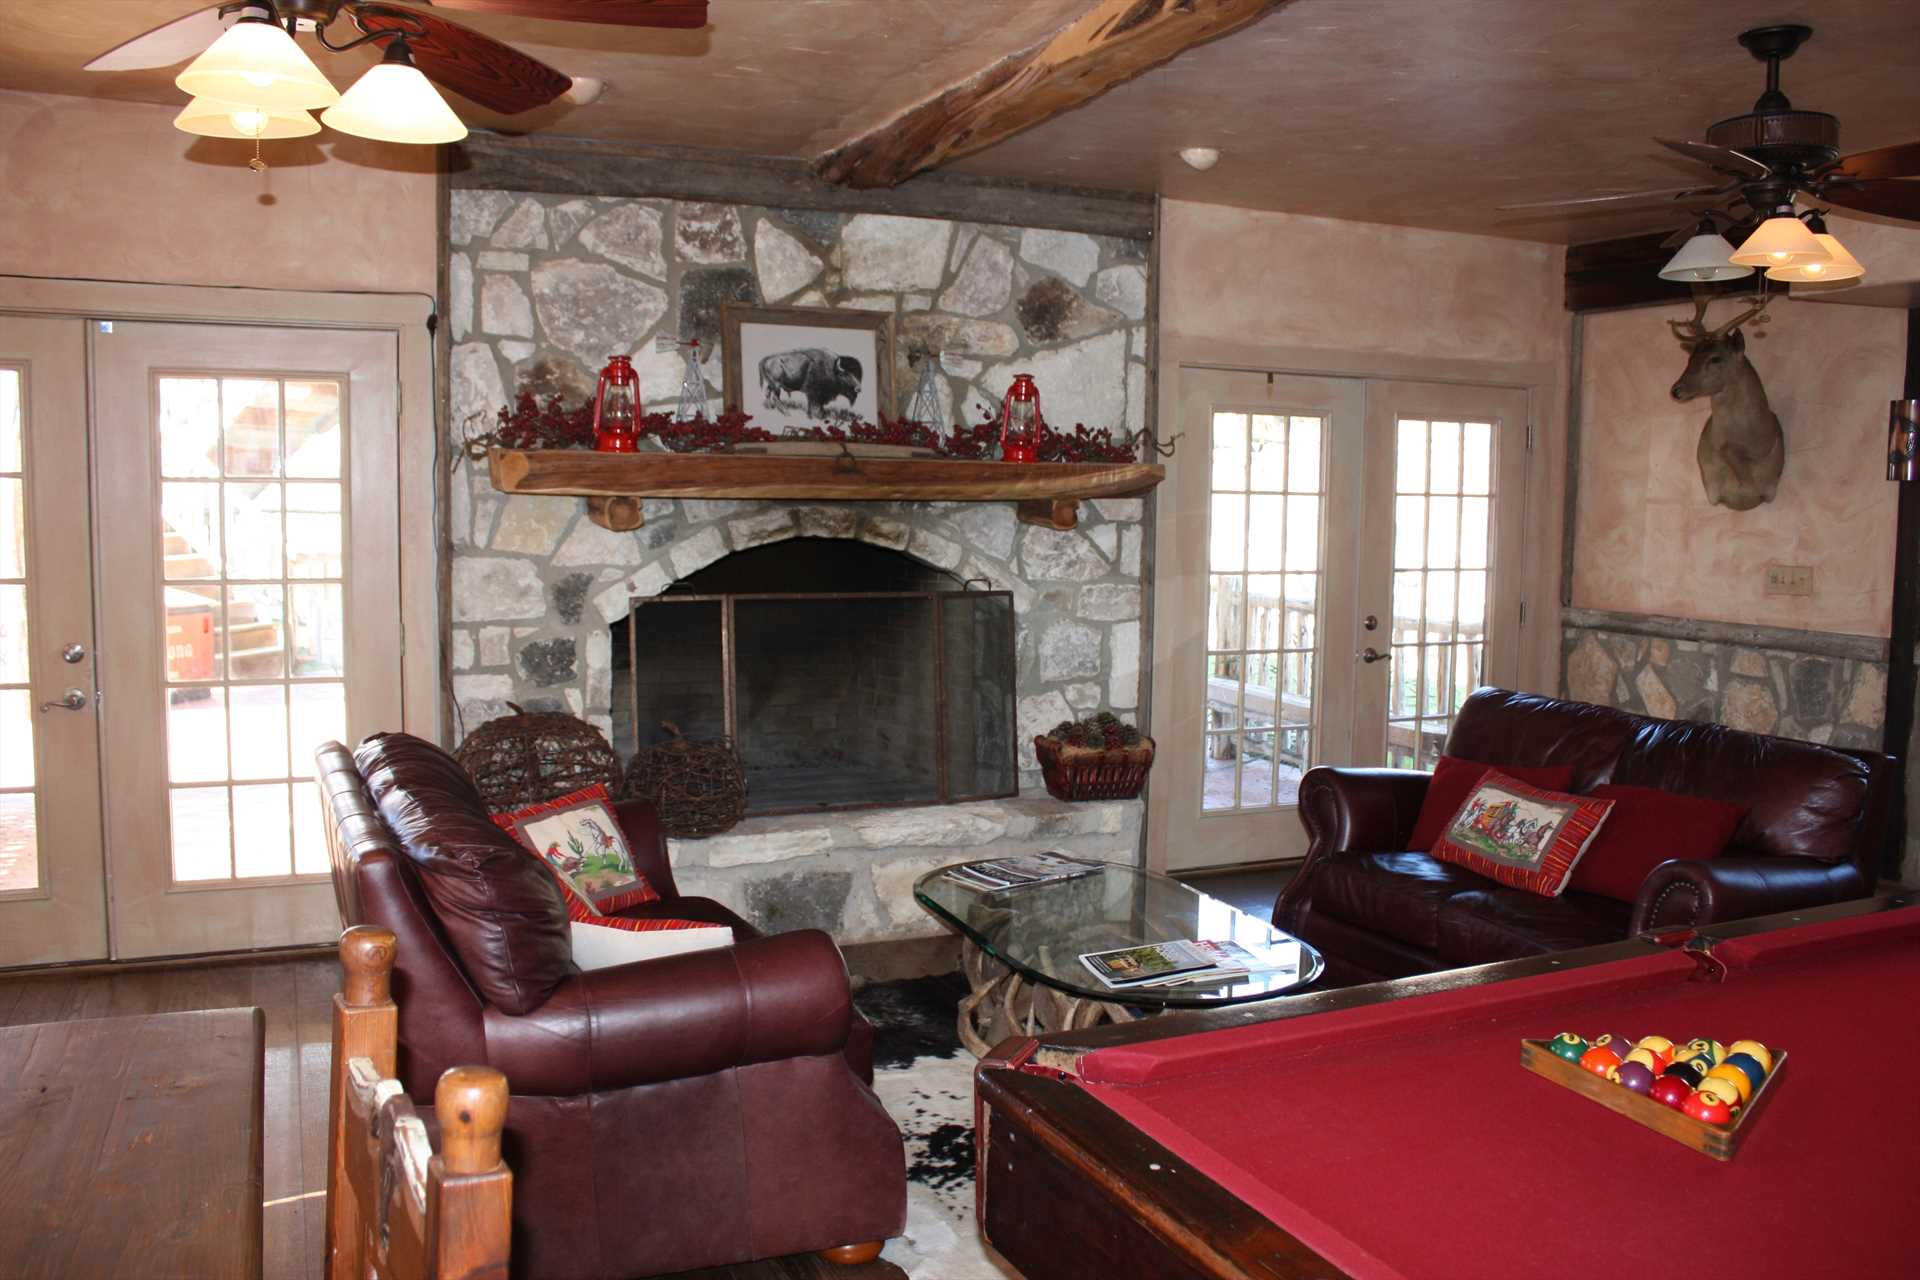 Commune with your fellow guests in climate-controlled comfort, on the main floor of the lodge, you'll find both a fireplace and pool table.